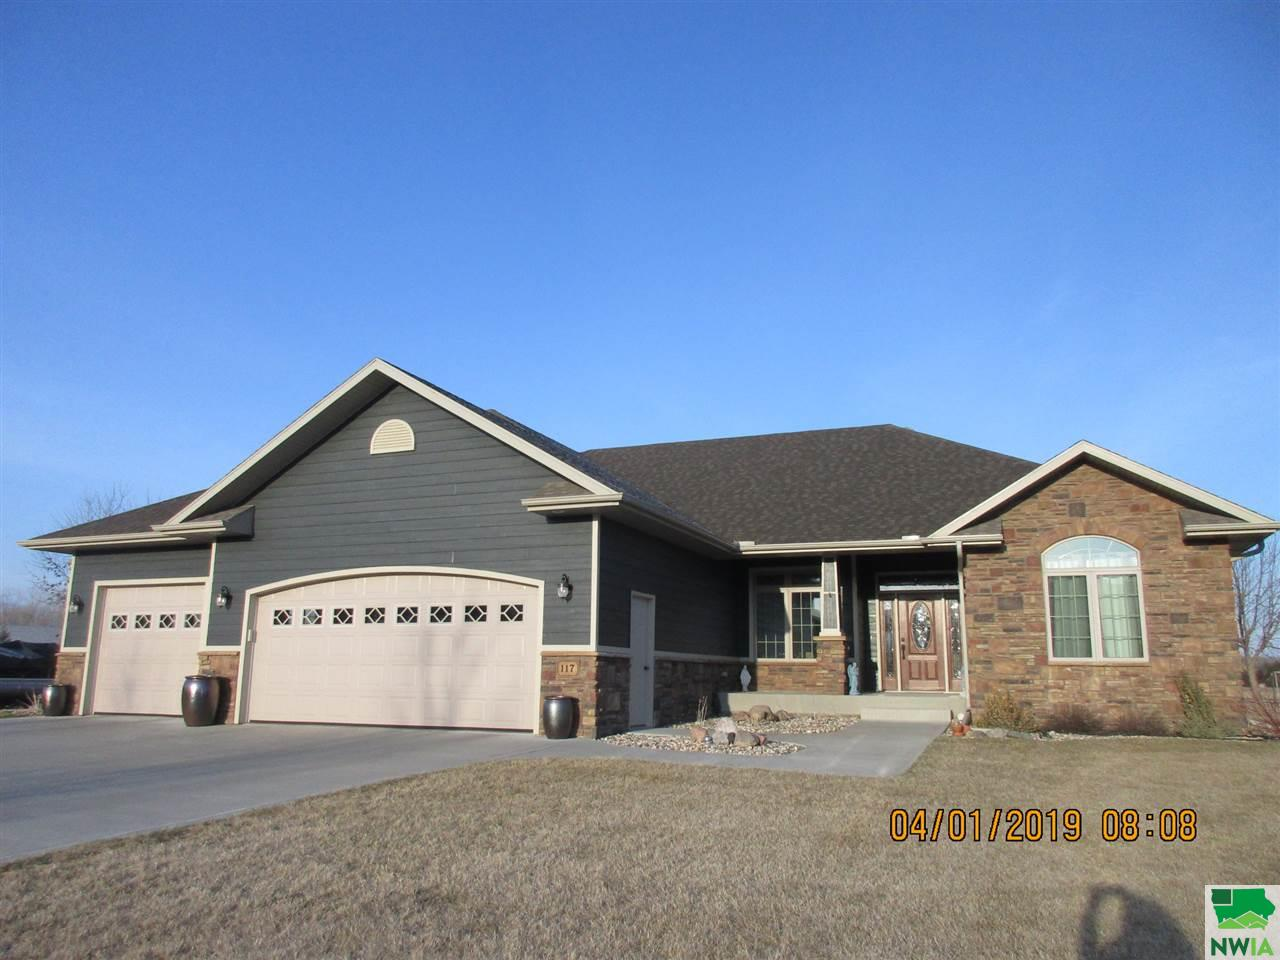 Property for sale at 117 Rottunda Way, South Sioux City,  NE 68776